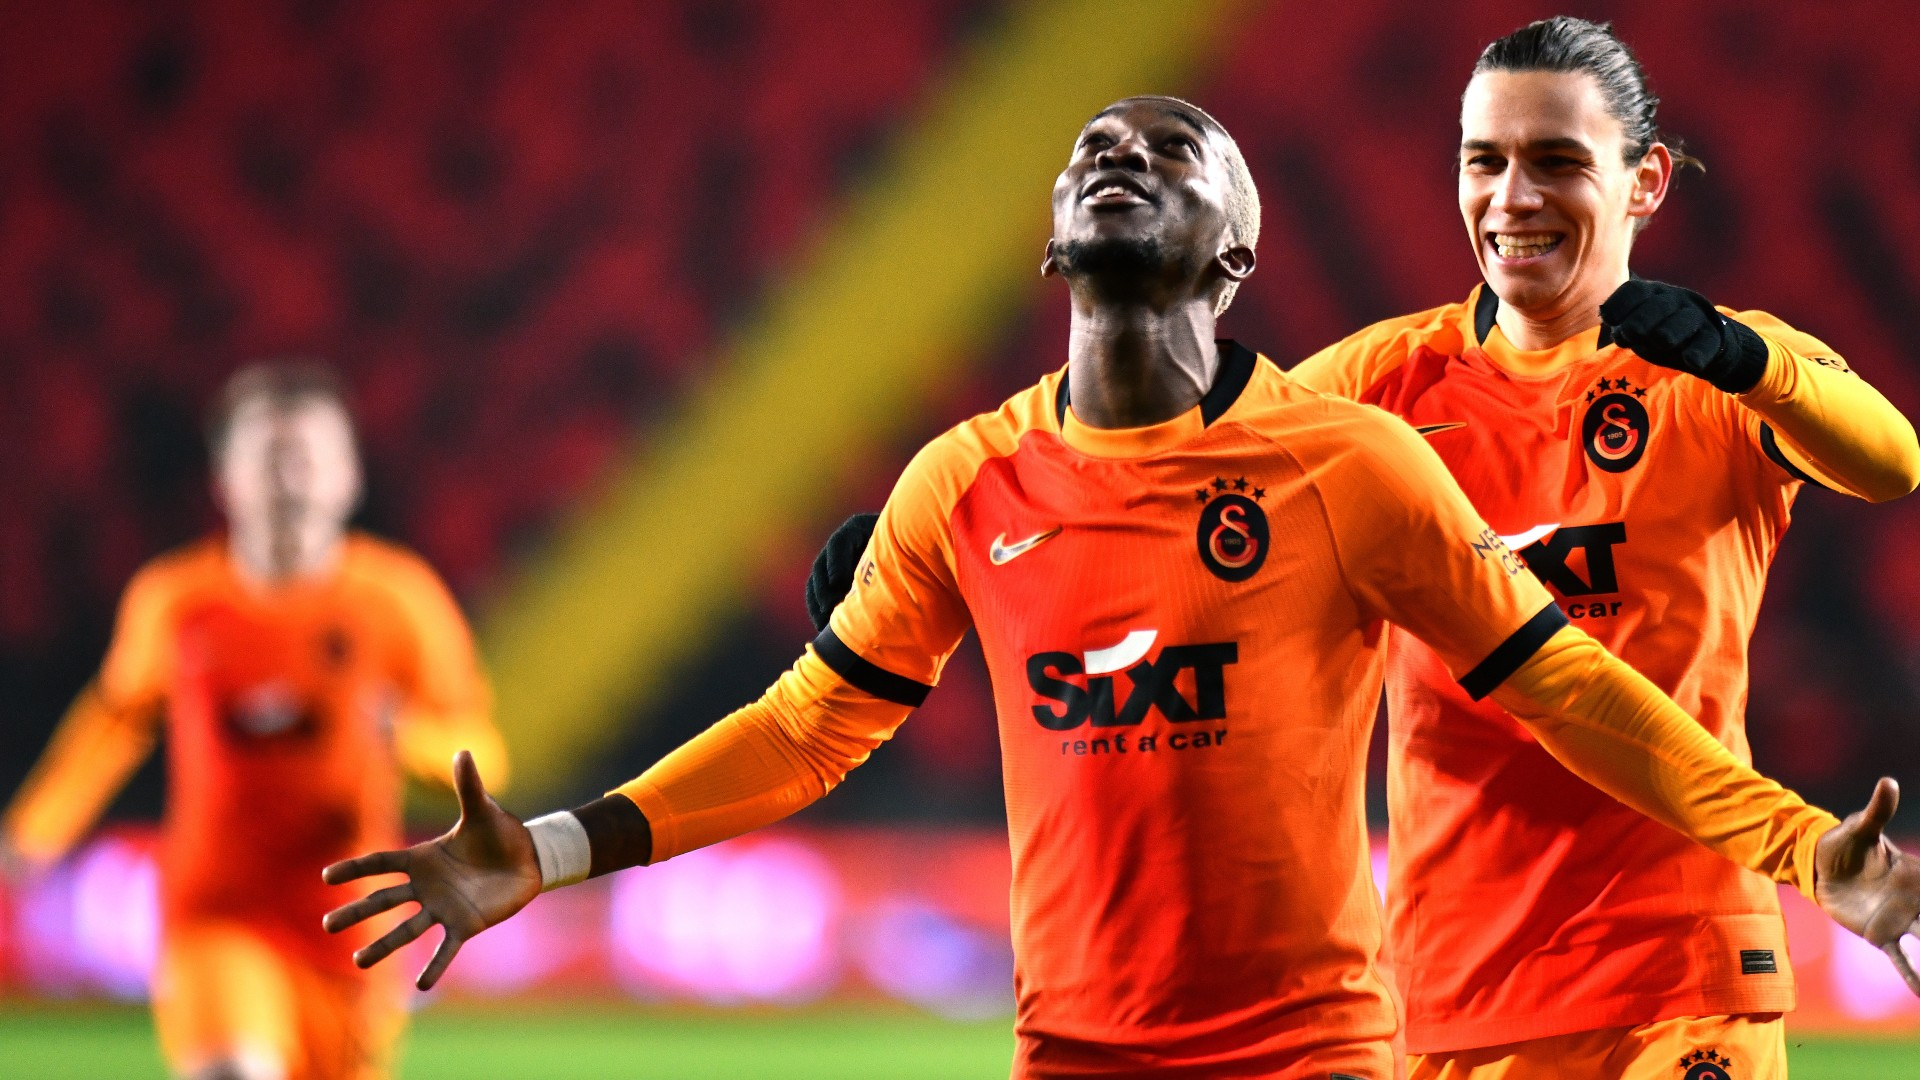 Onyekuru and Mohamed power Galatasaray past Ba's Istanbul Basaksehir